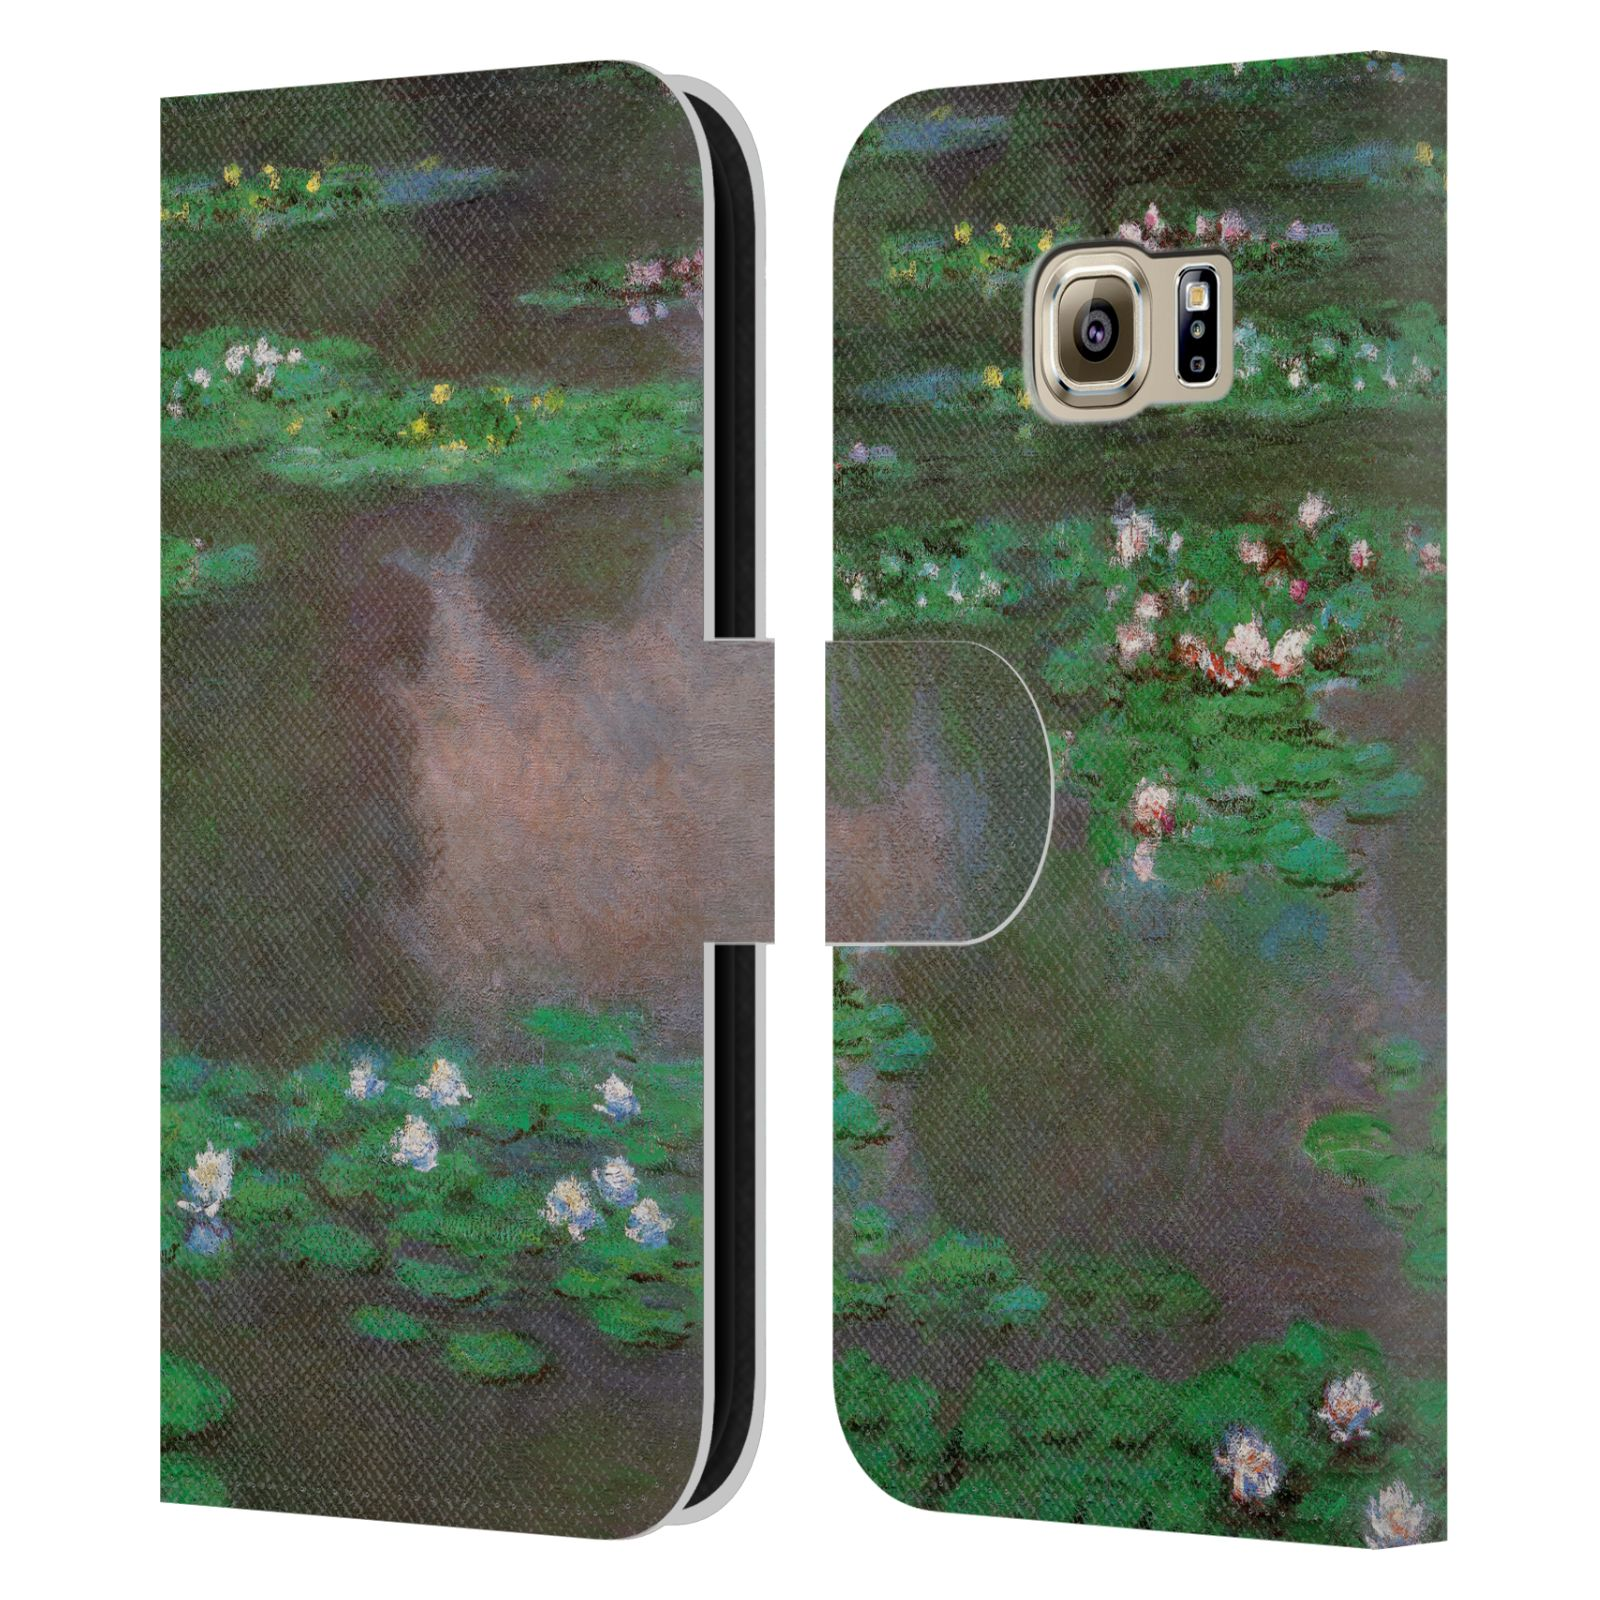 OFFICIAL-MASTERS-COLLECTION-PAINTINGS-2-LEATHER-BOOK-CASE-FOR-SAMSUNG-PHONES-1